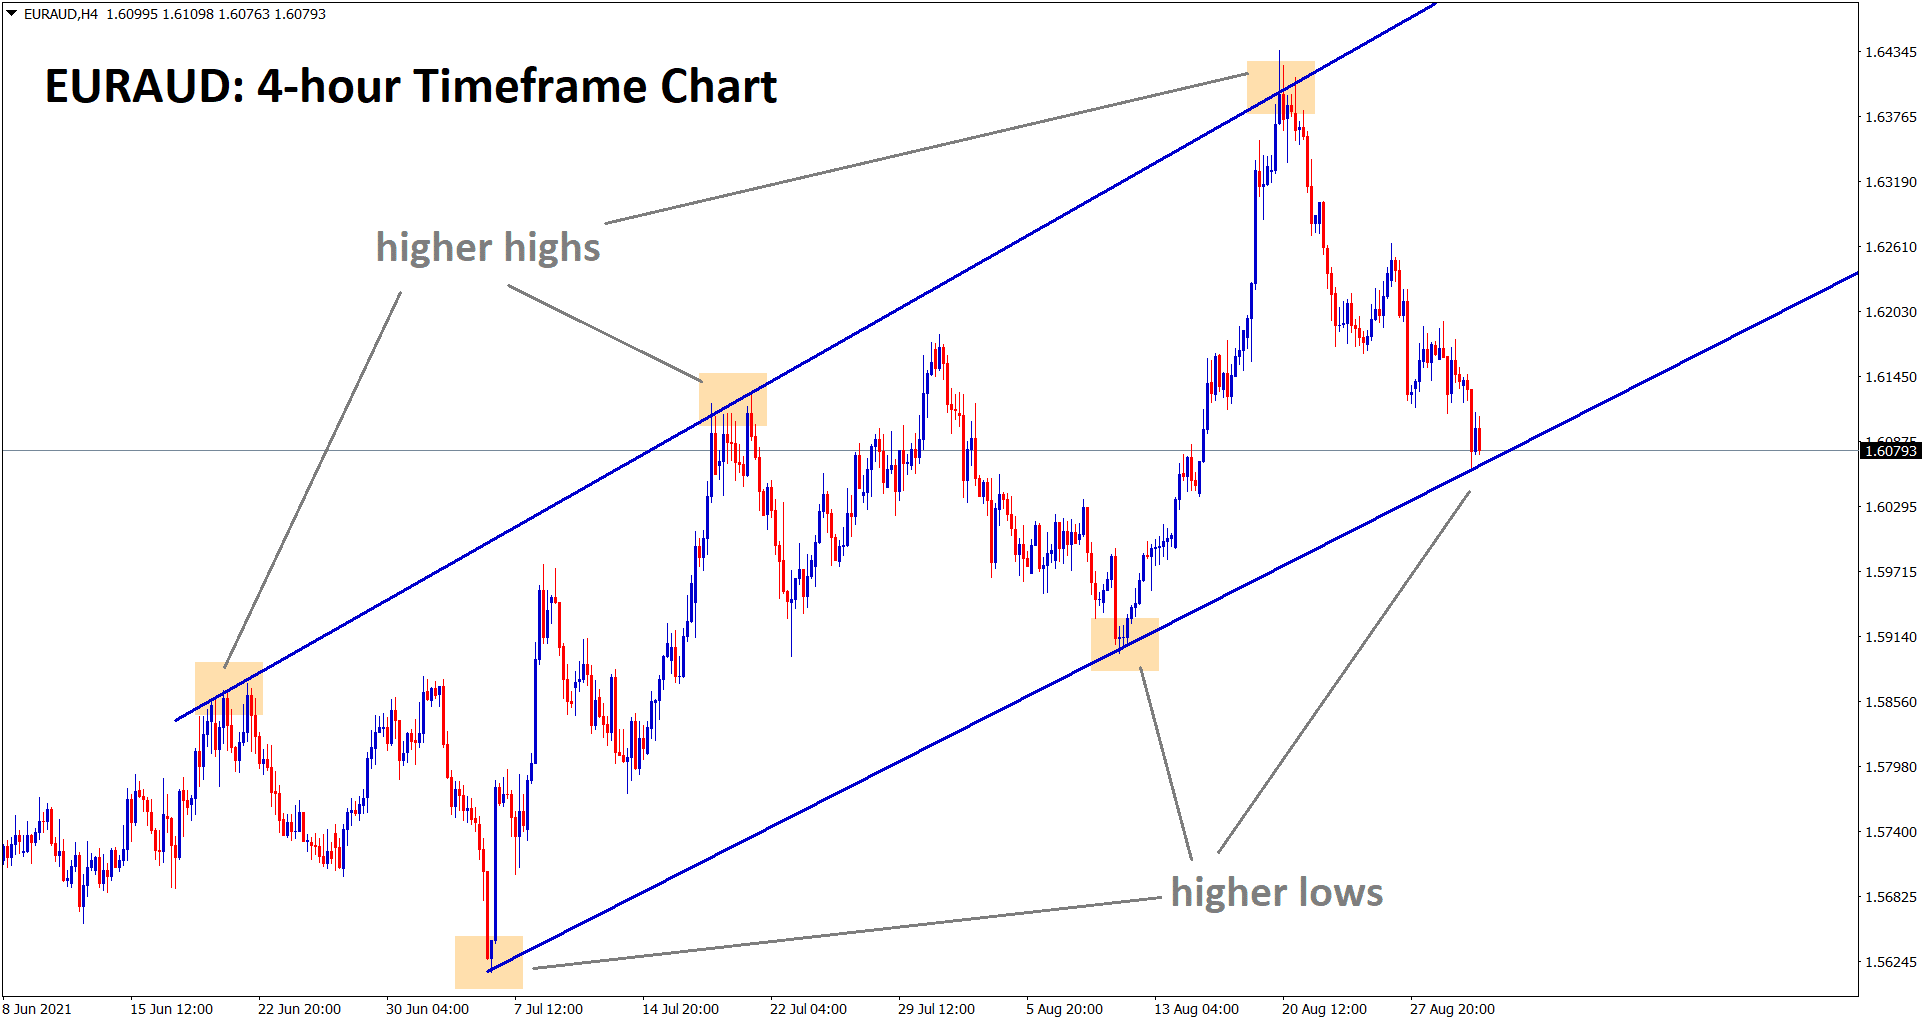 EURAUD at the higher low level of an Uptrend line